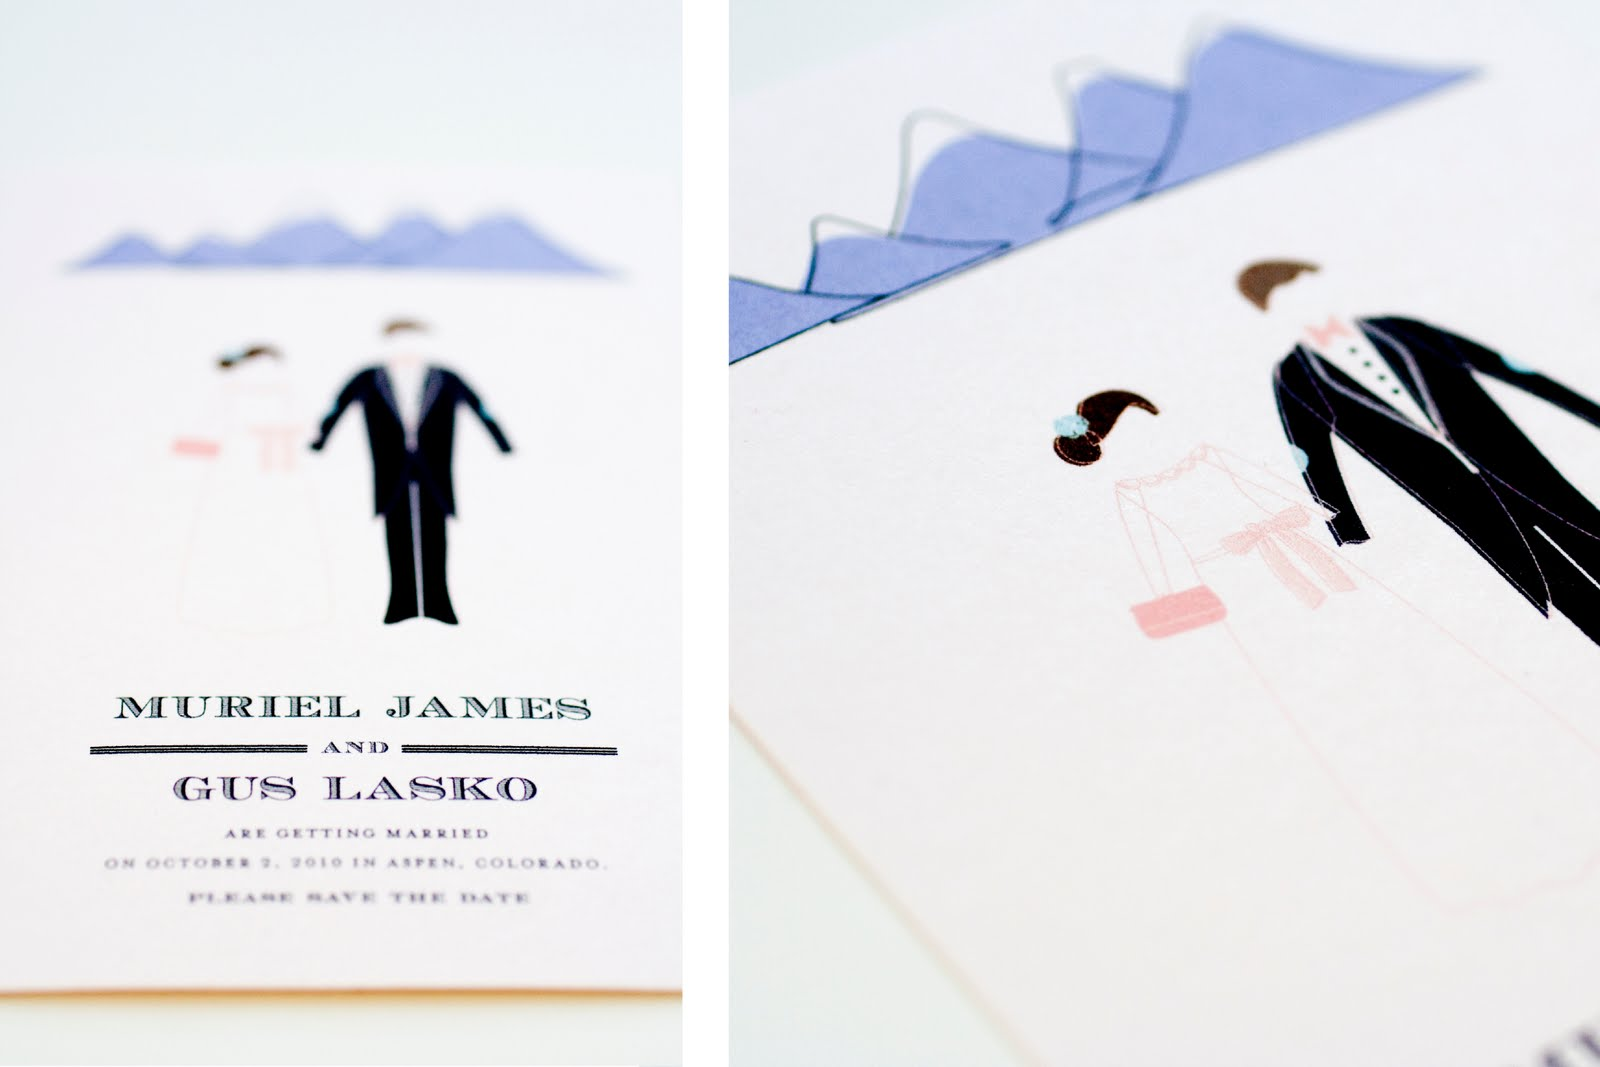 Wedding Theme Invitations: Mountain Theme Wedding Invitations From MaeMae Paperie